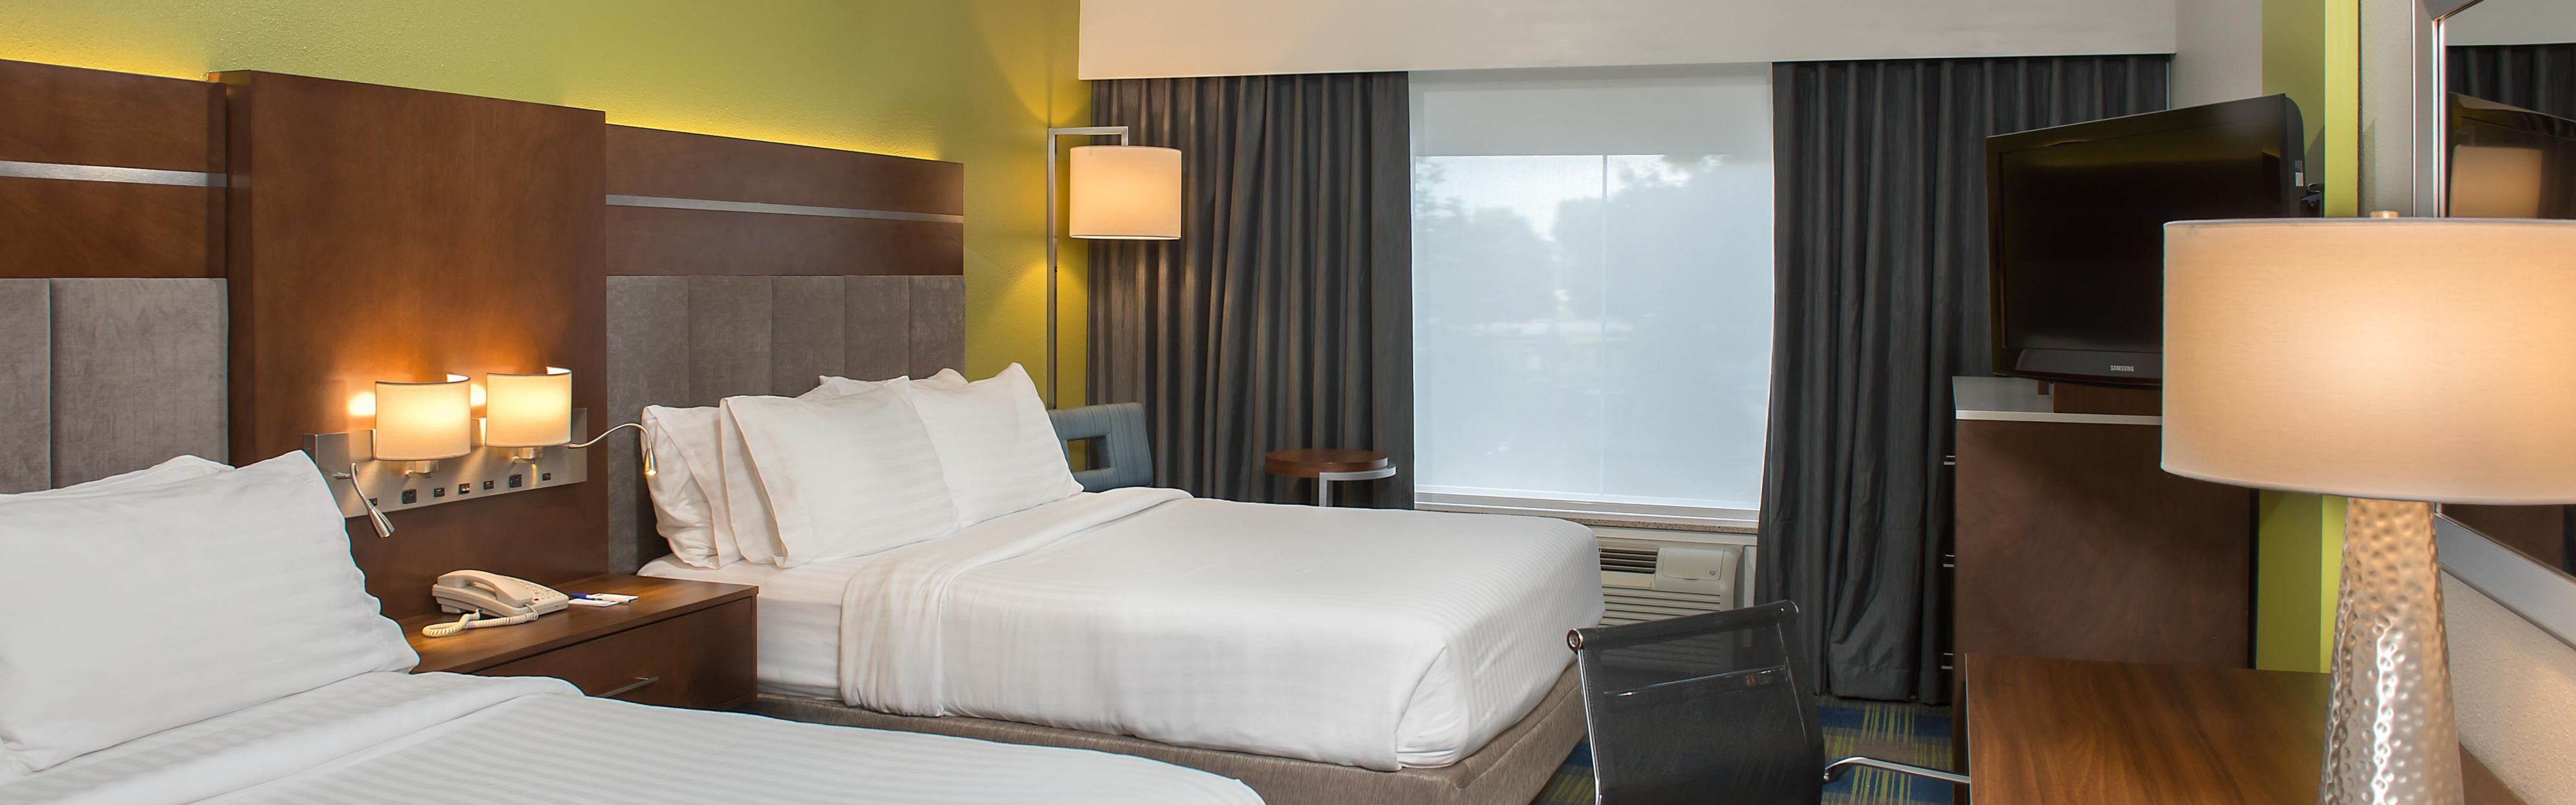 Holiday Inn Express & Suites Clifton Park image 1